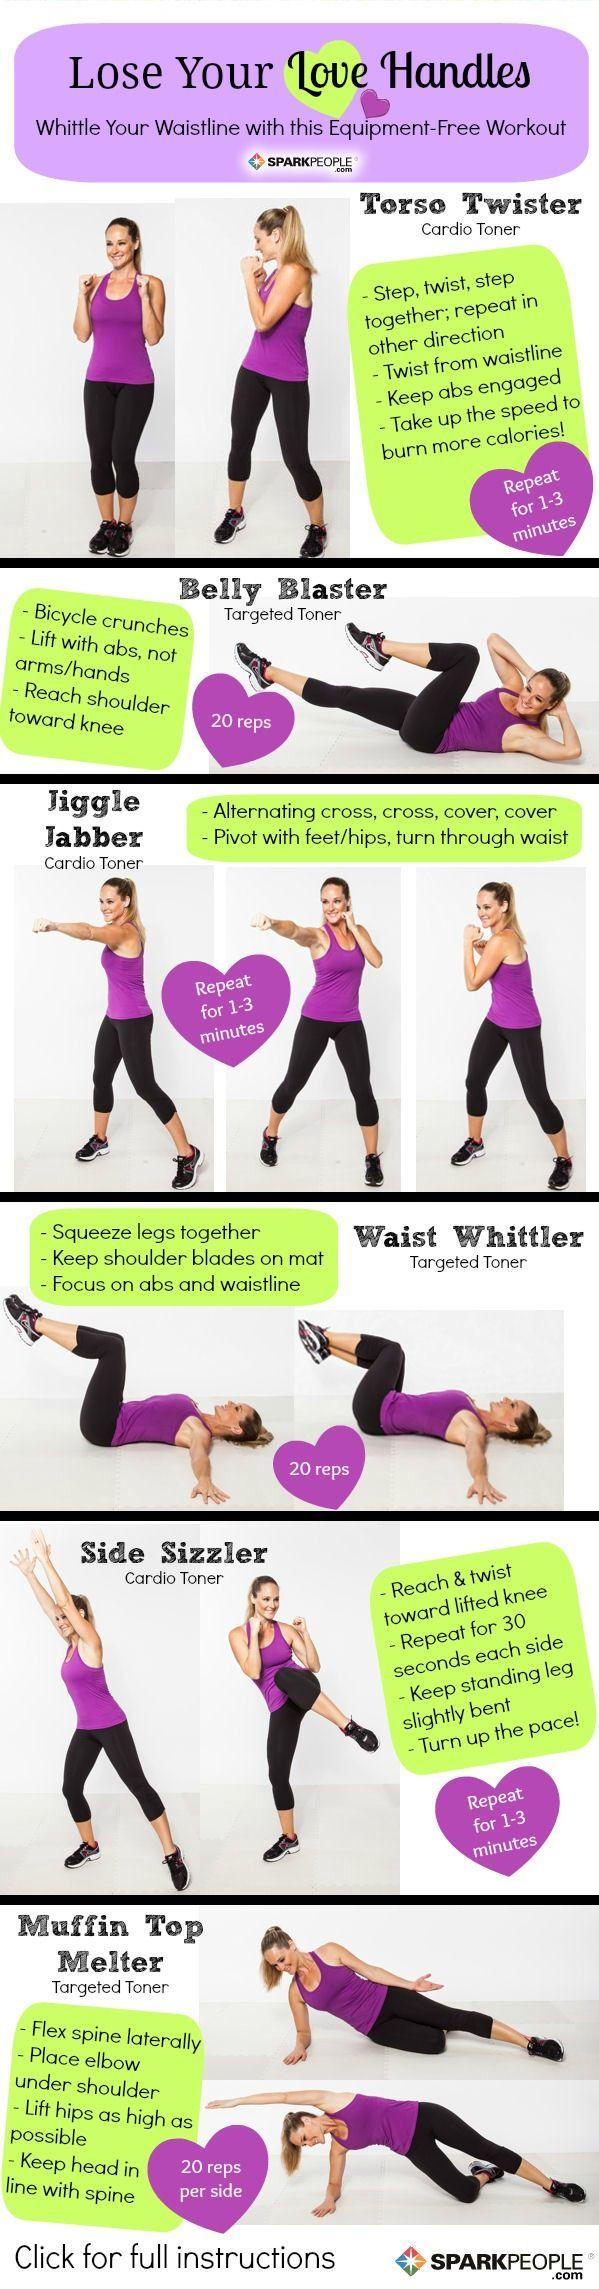 Wedding - The 'Lose Your Love Handles' Workout